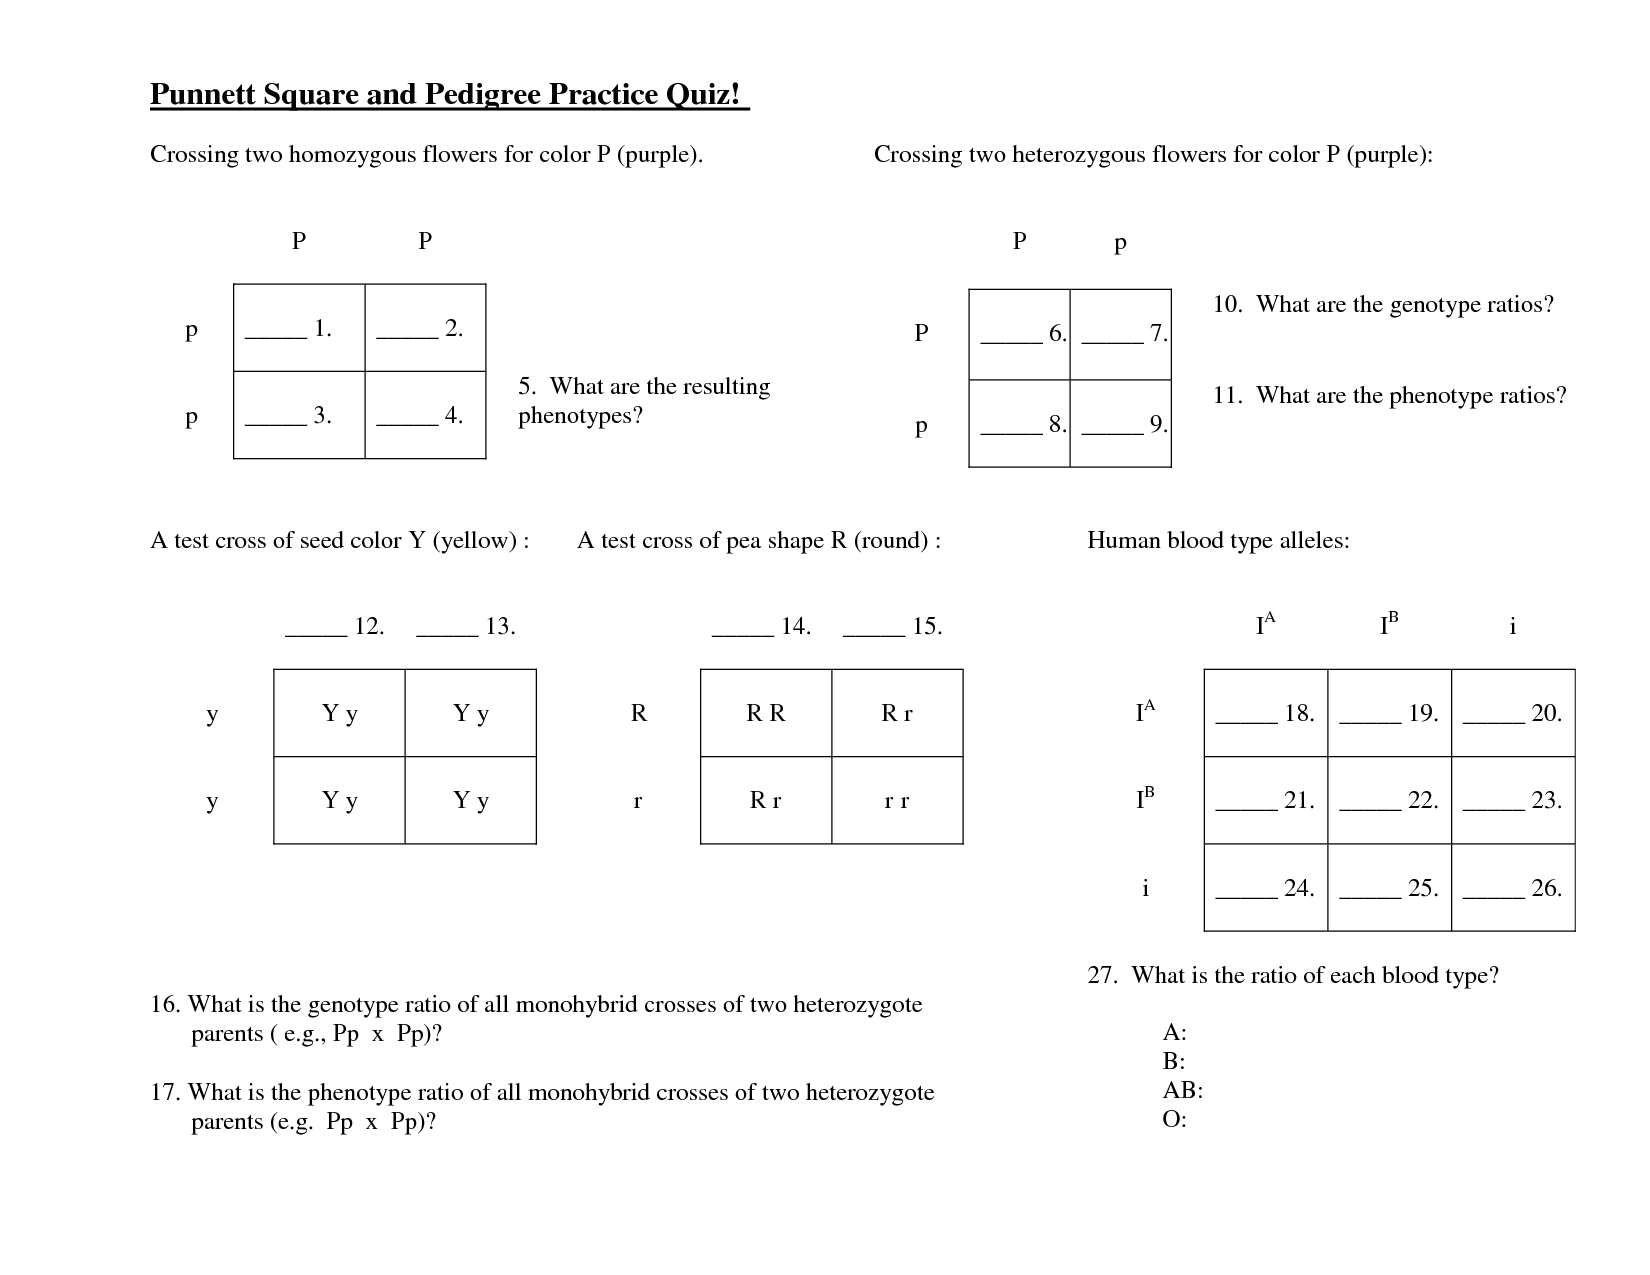 Human Pedigree Genetics Worksheet Key